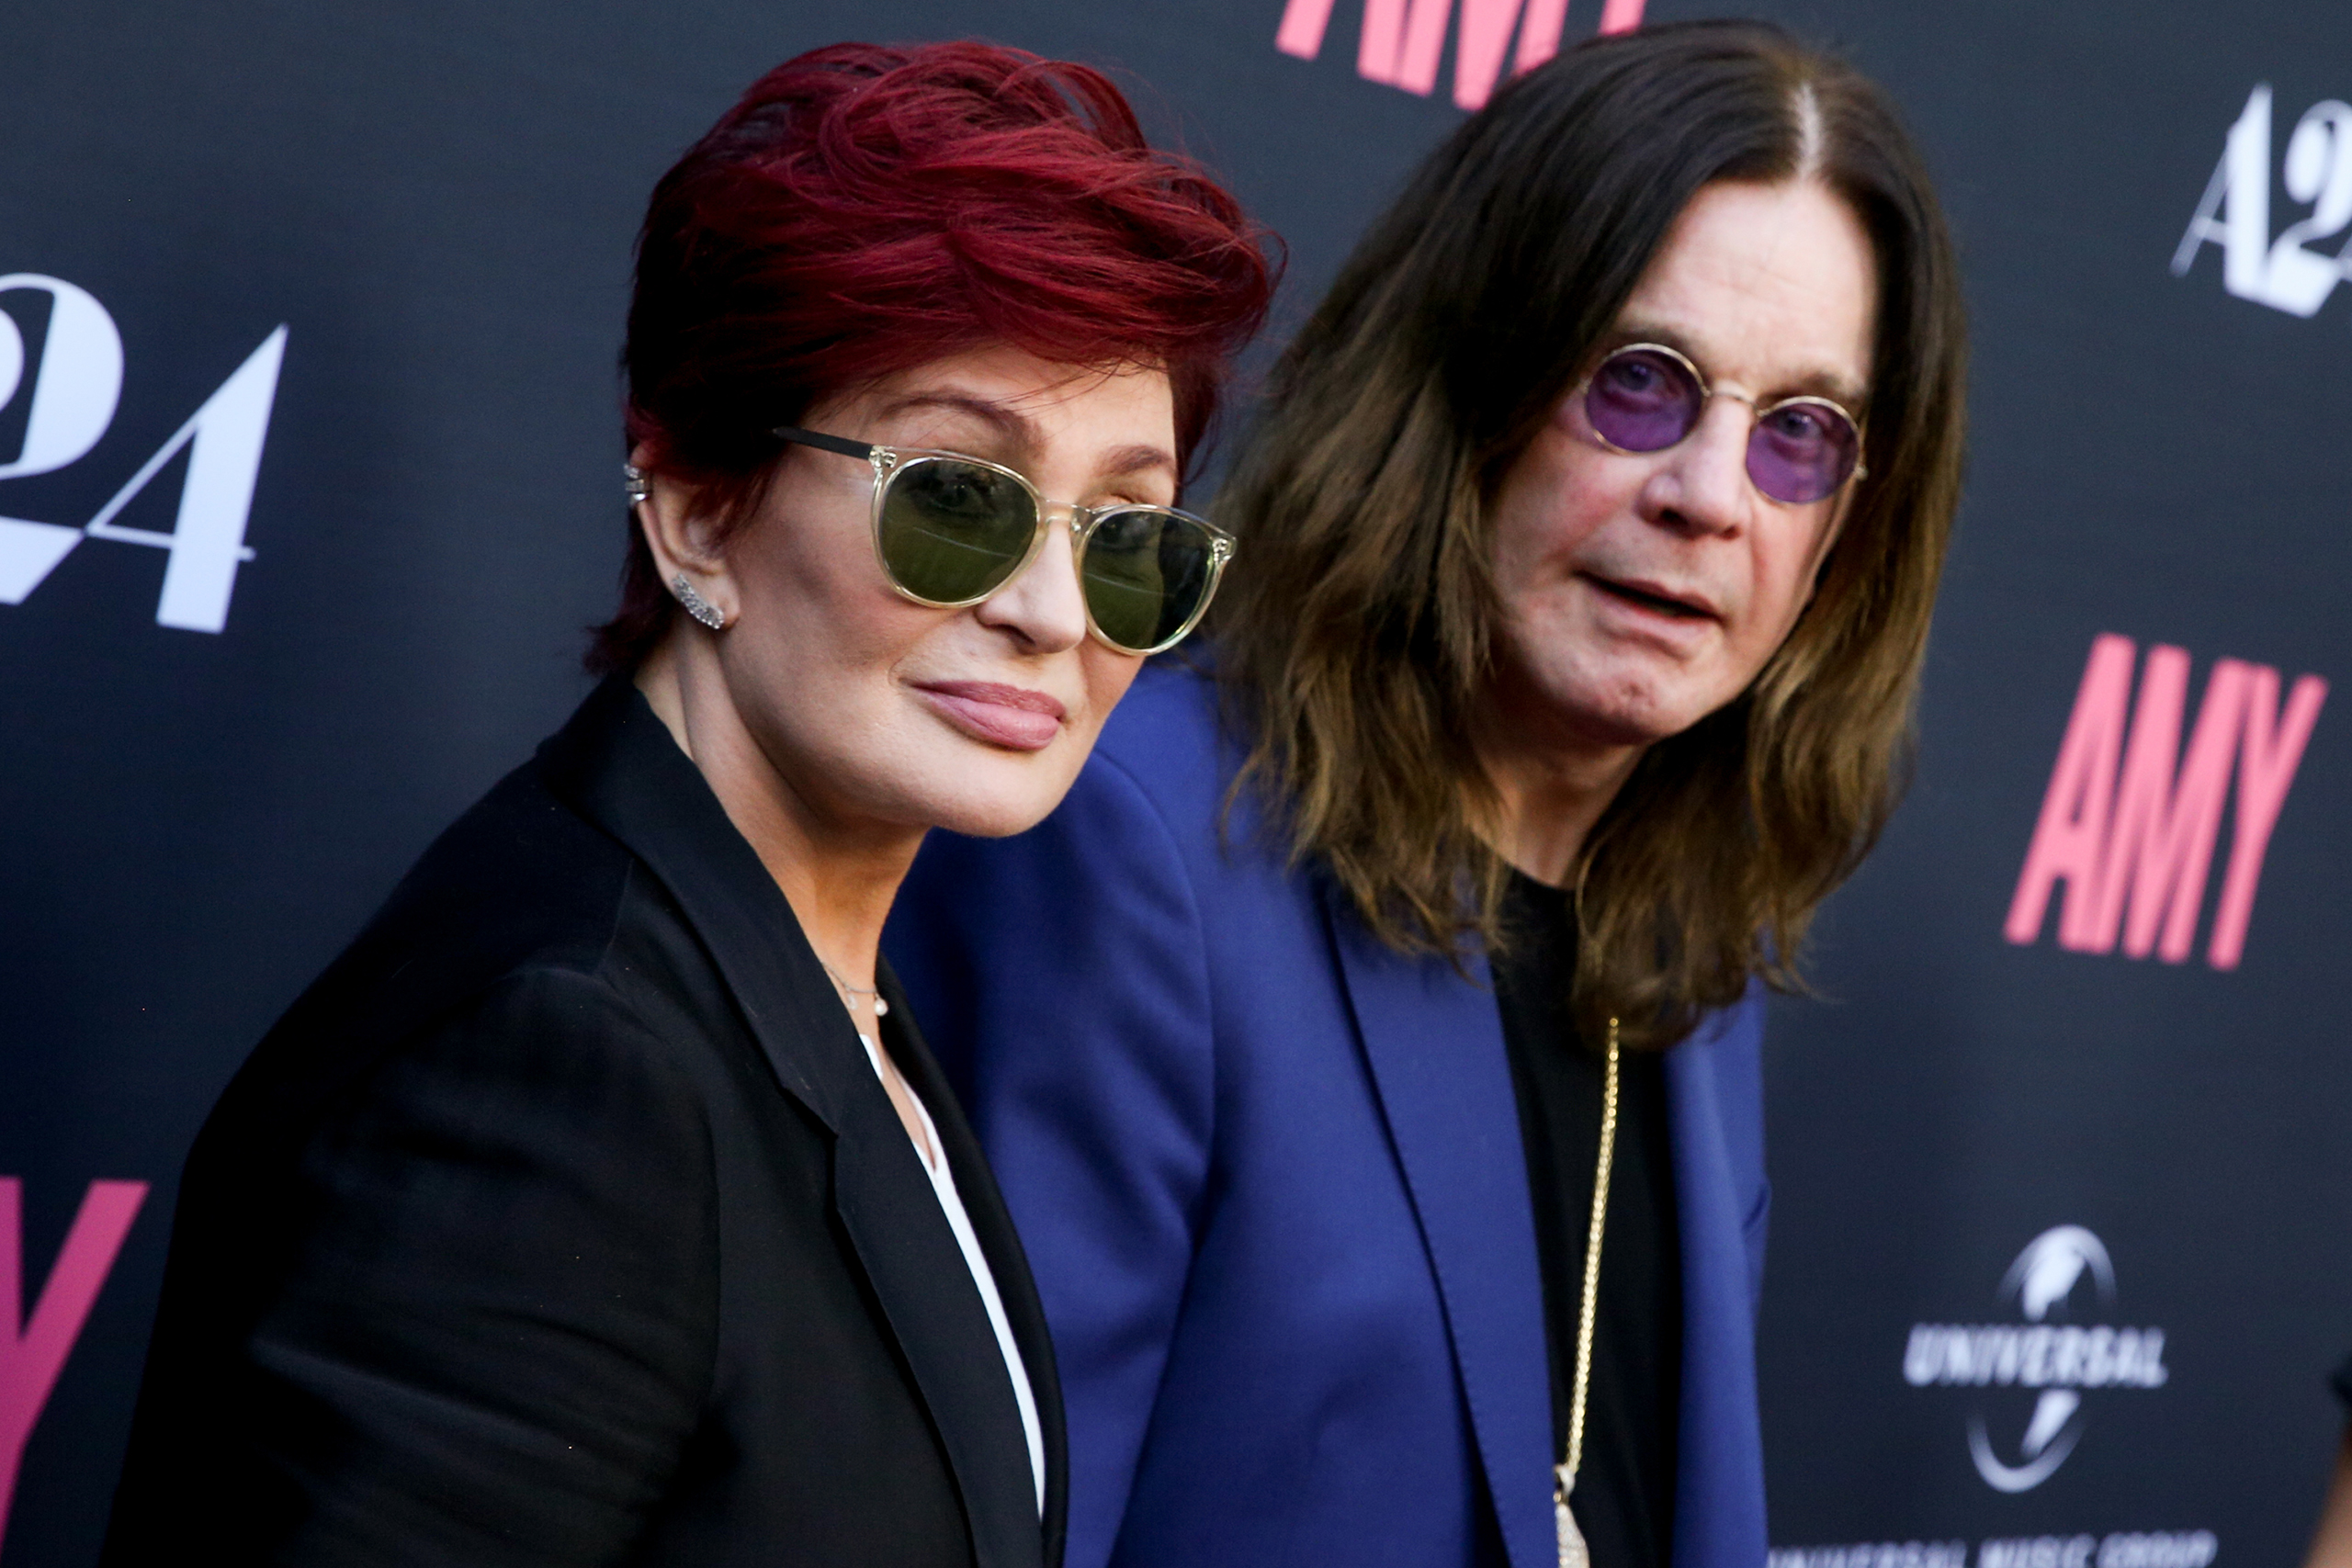 Sharon Osbourne, left, and Ozzy Osbourne arrive at the LA Premiere of  Amy  in Los Angeles,  June 25, 2015.